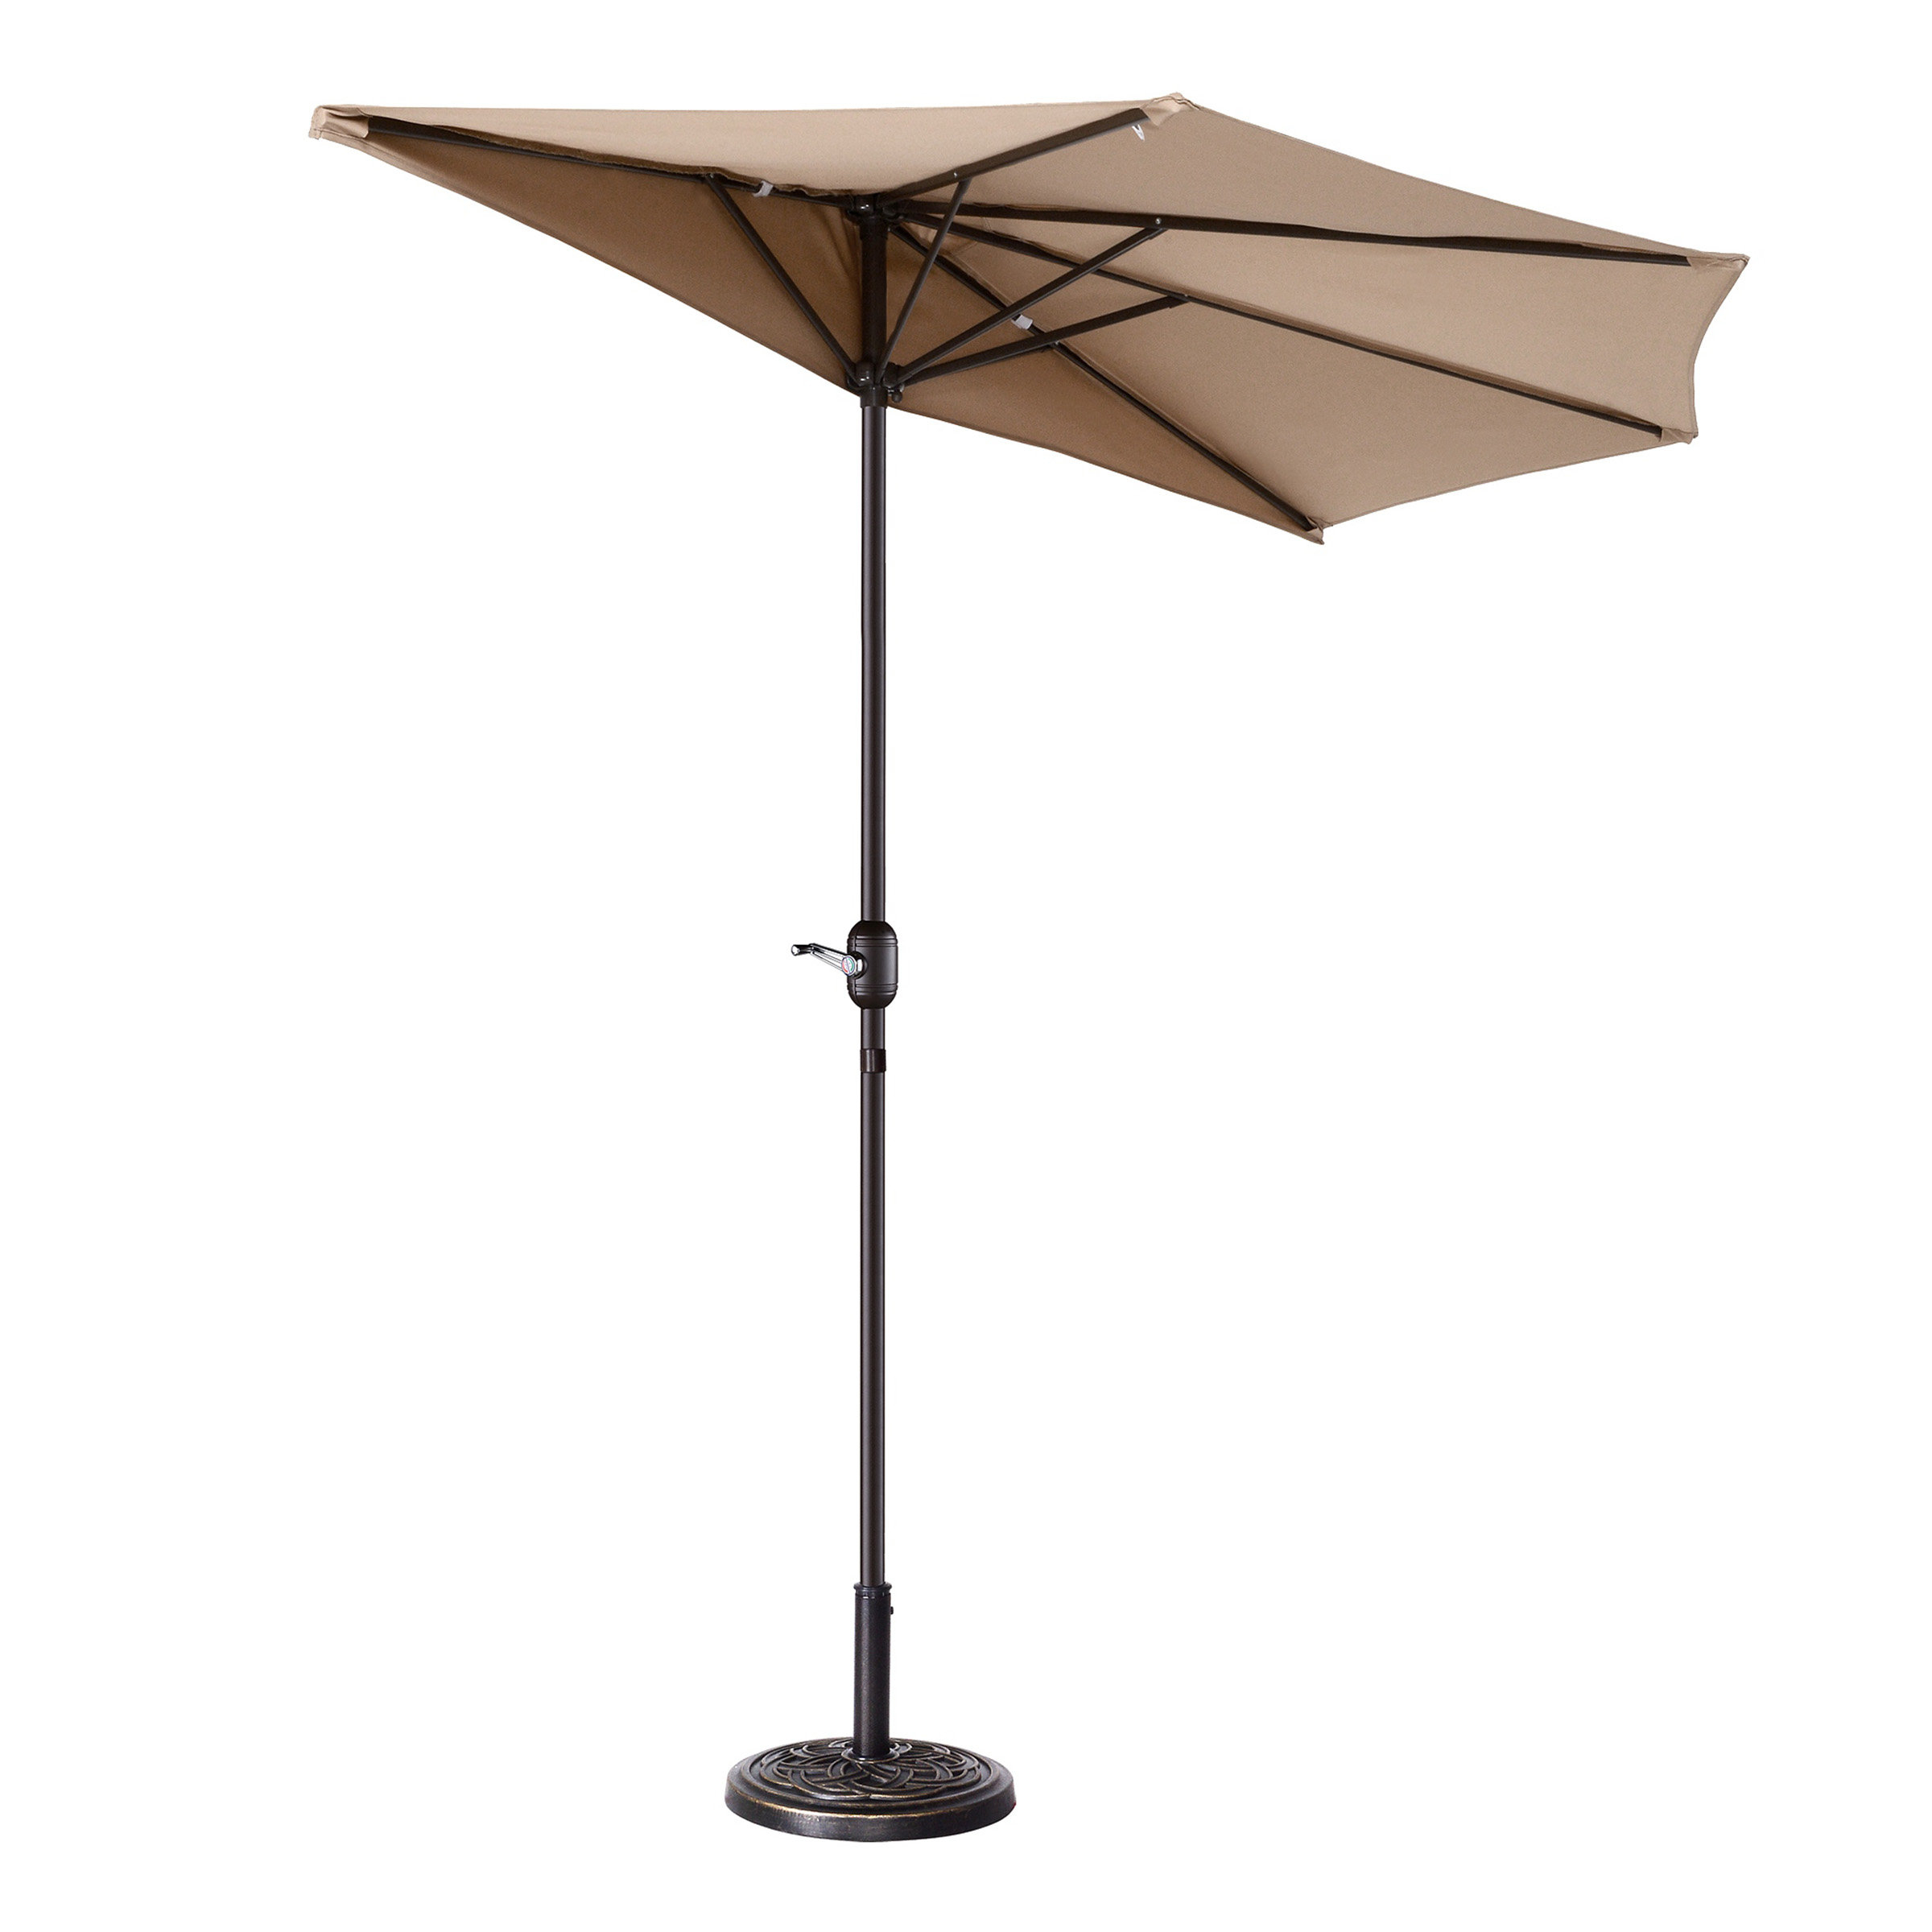 Latest Coggeshall Led Lighted Market Umbrellas In Colburn Half 9' Market Umbrella (View 11 of 20)